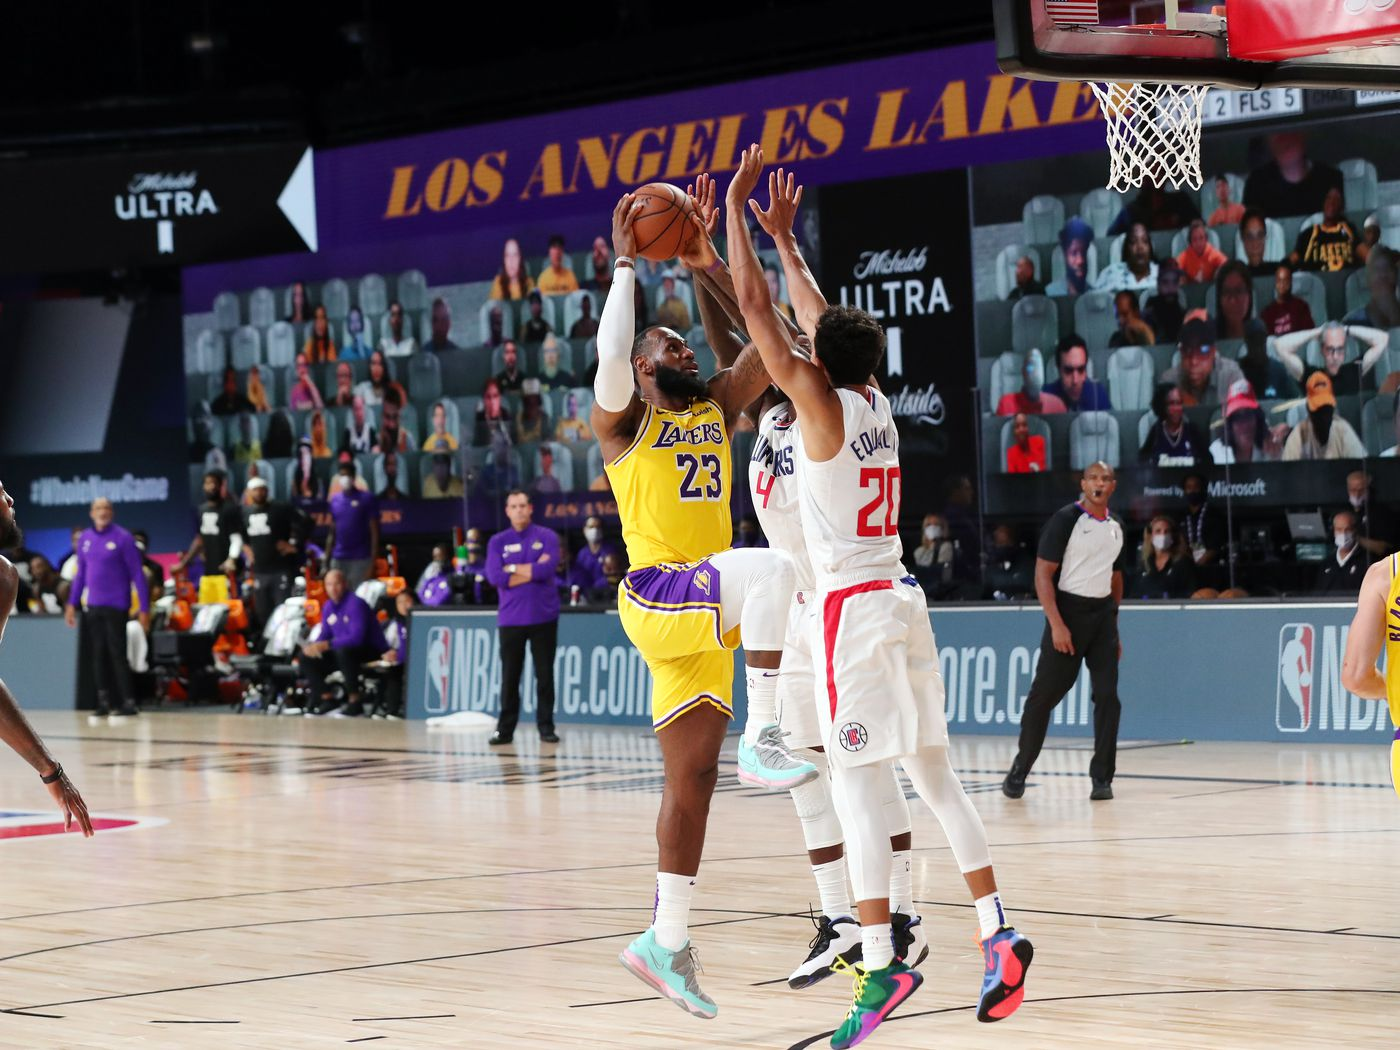 Clippers Vs Lakers Final Score Lebron James Hits Game Winner In 103 101 Win Thursday Night Draftkings Nation